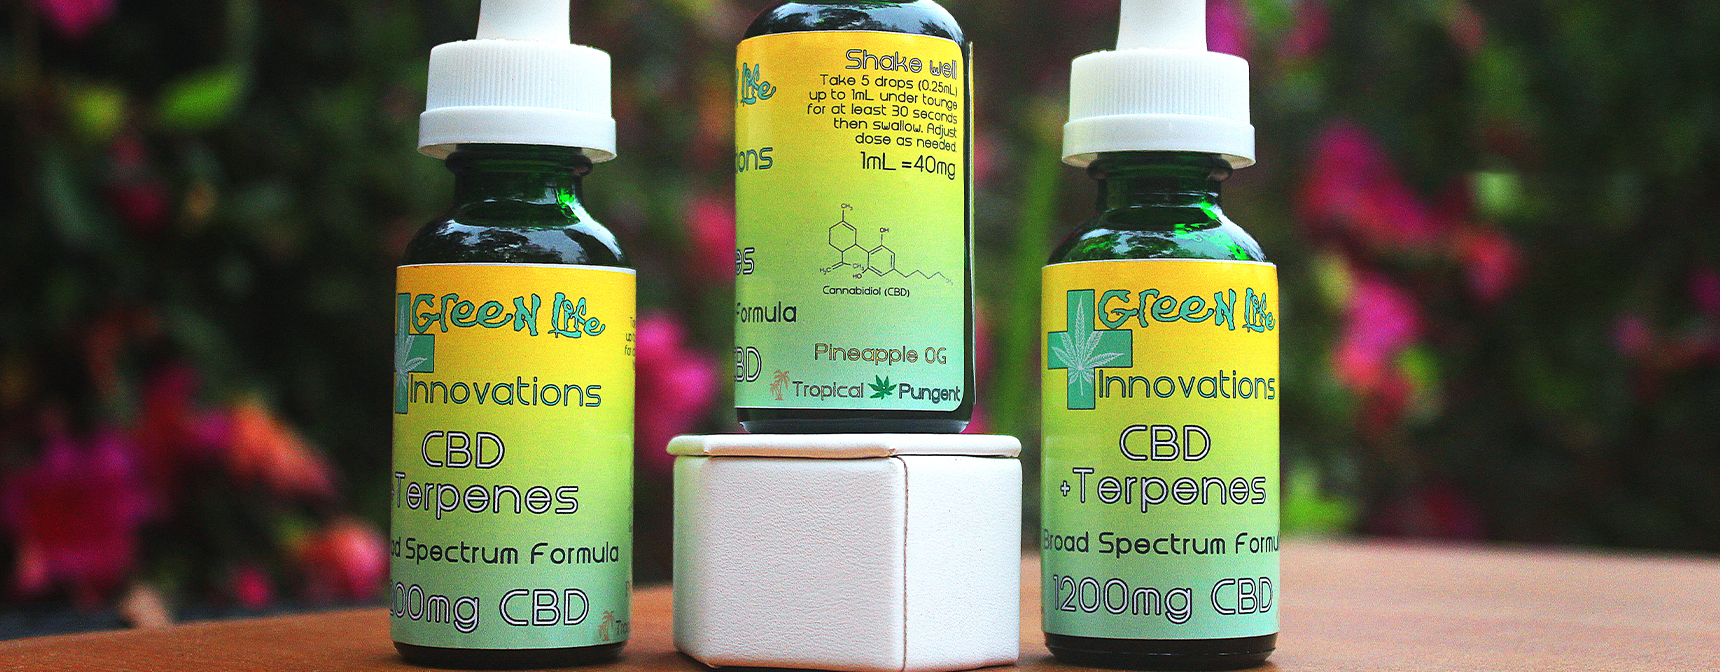 CBD Vials from Green Life Innovations in Gainesville